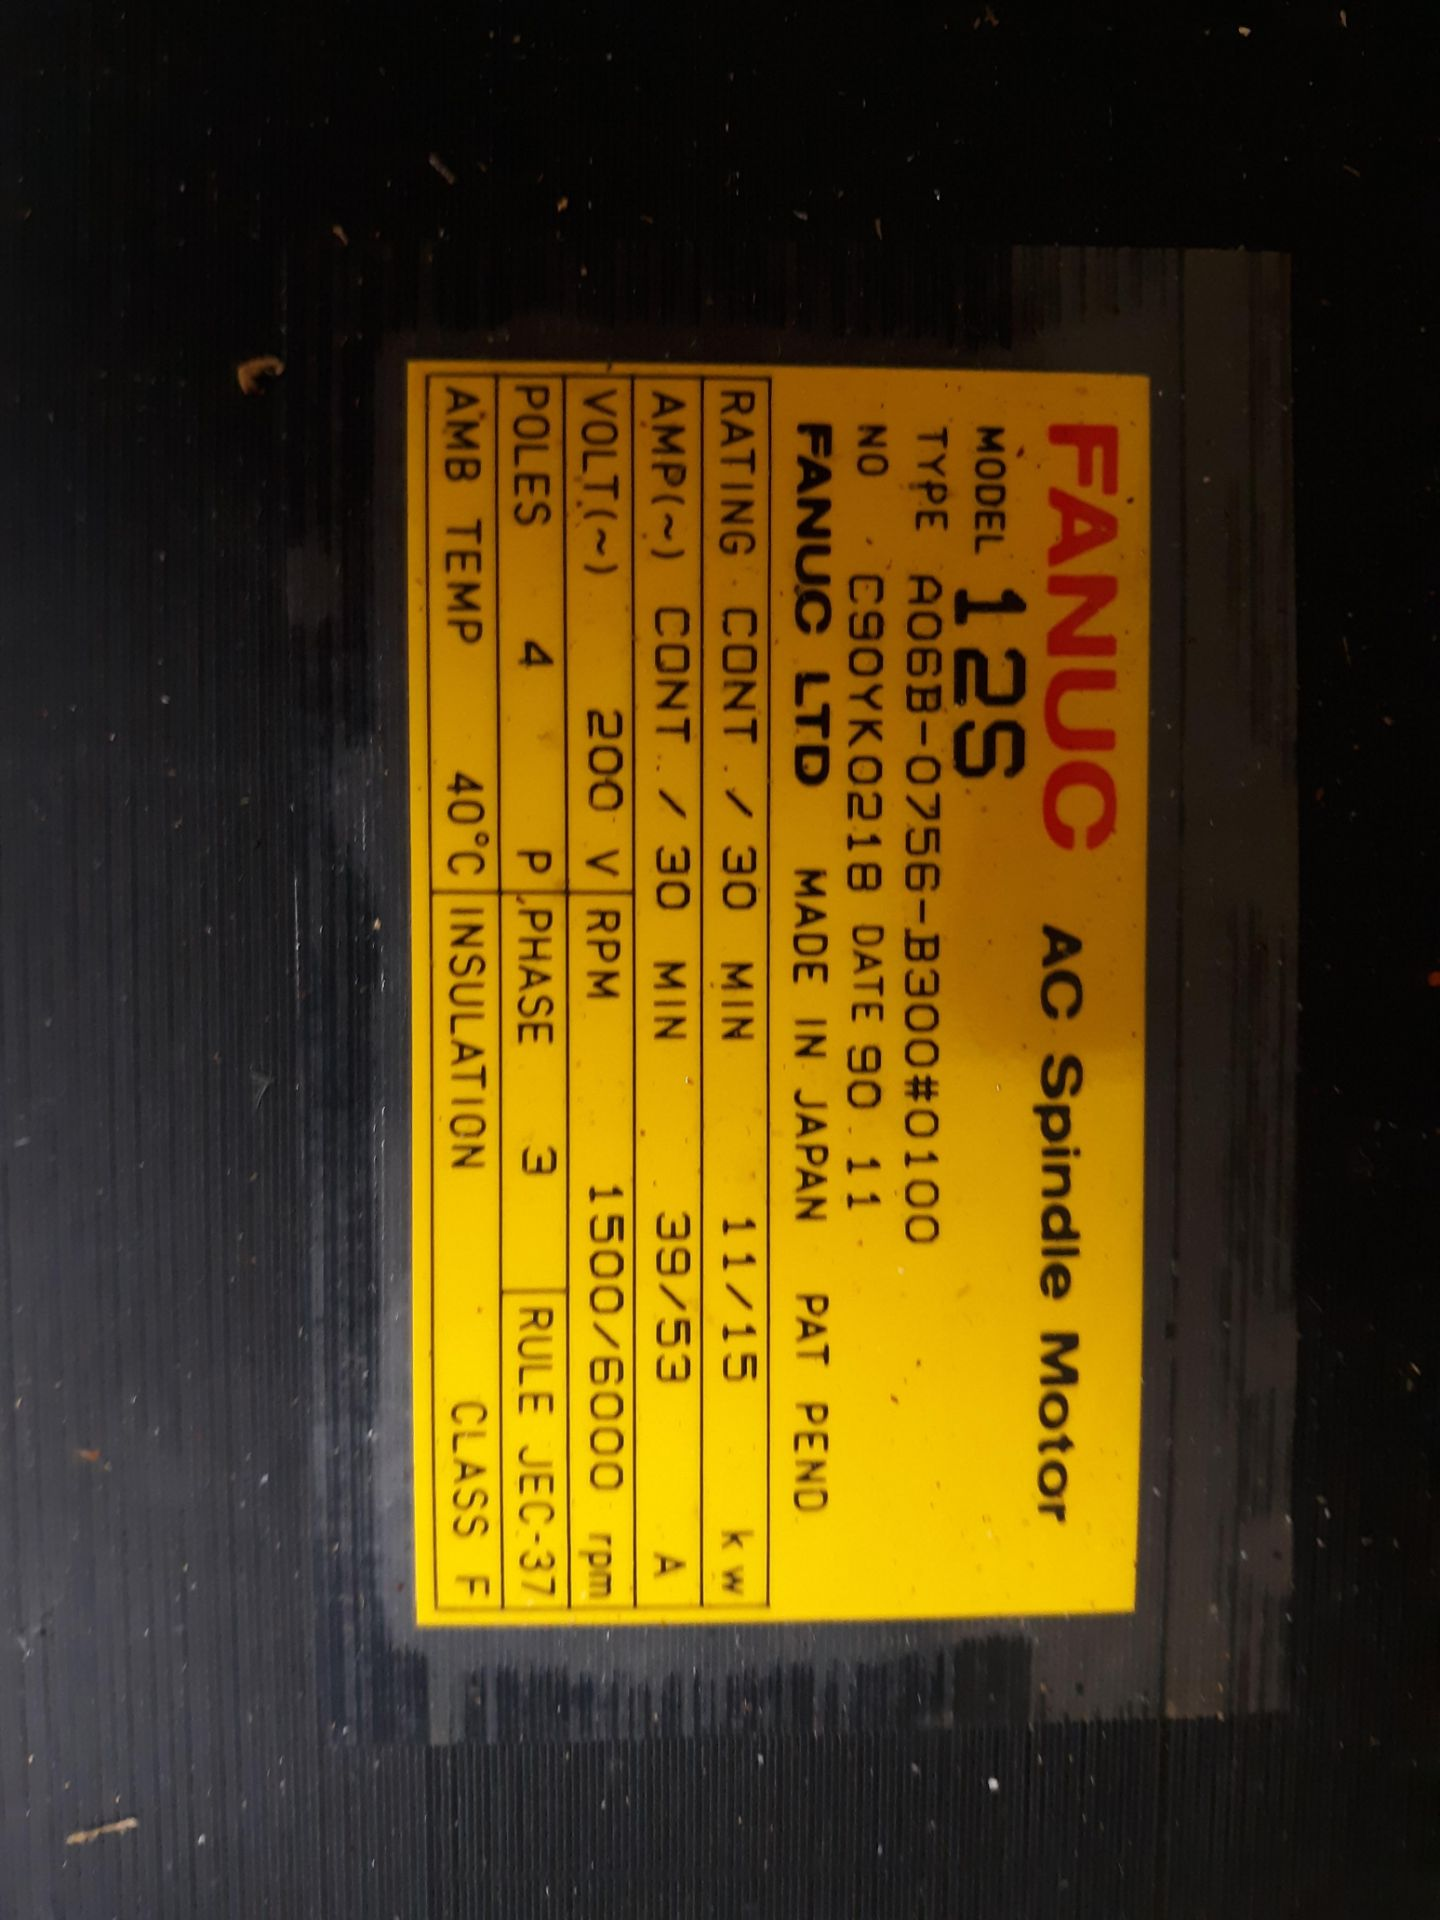 Lot 5 - FANUC AC SPINDLE MOTOR MODEL-12S 3-PHASE; RIGGING FEE: $10